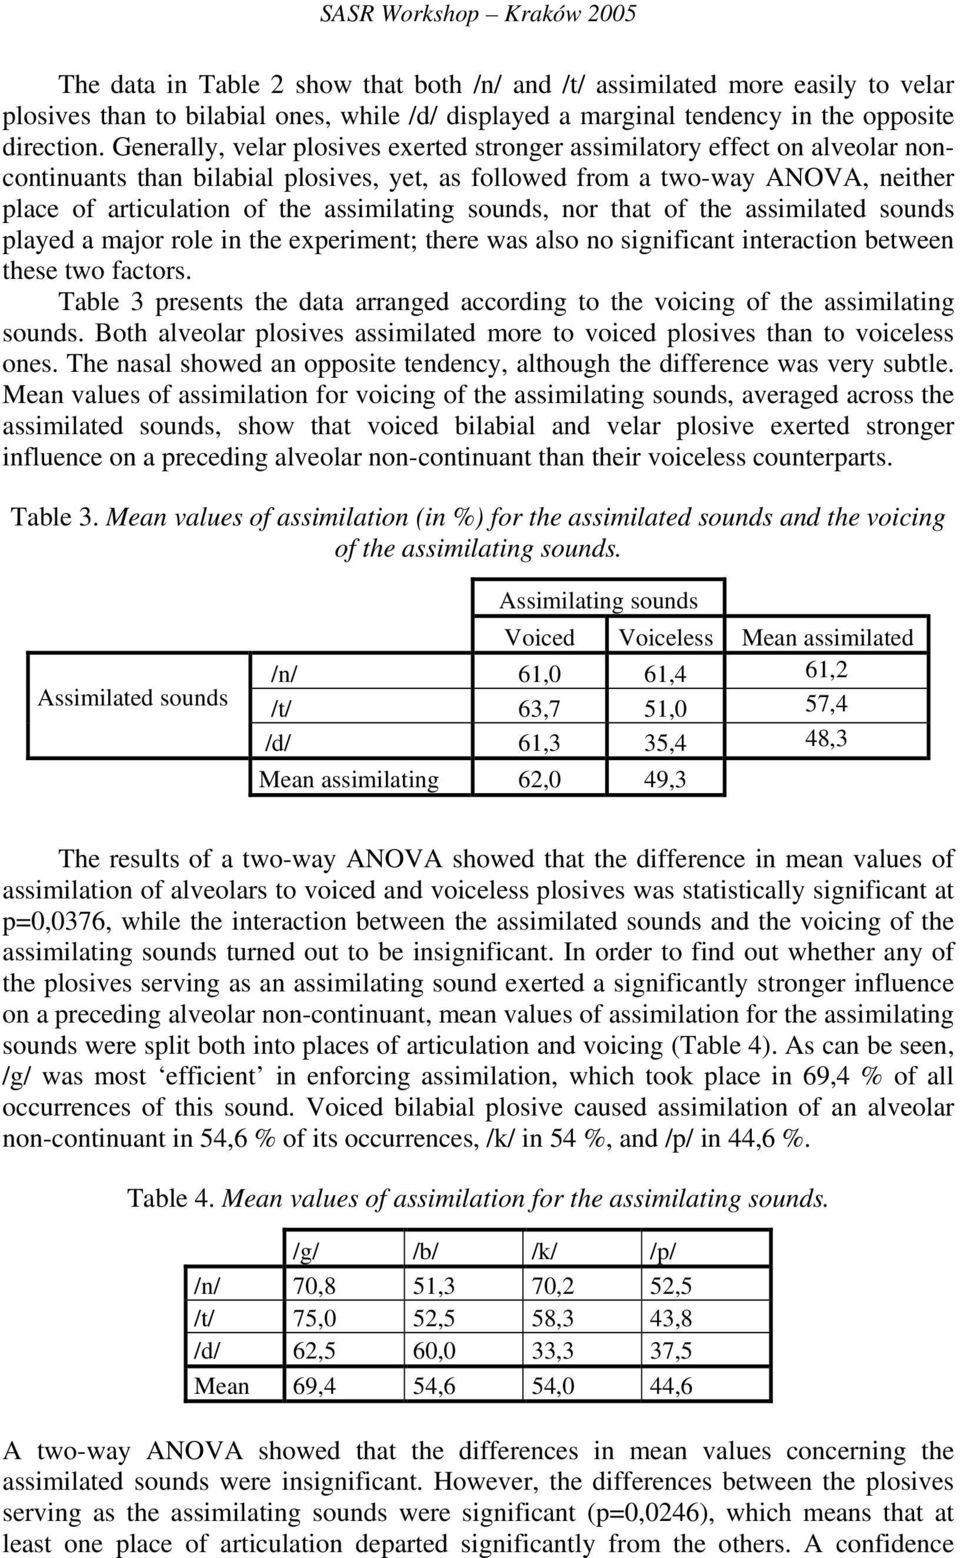 Generally, velar plosives exerted stronger assimilatory effect on alveolar noncontinuants than bilabial plosives, yet, as followed from a two-way ANOVA, neither place of articulation of the